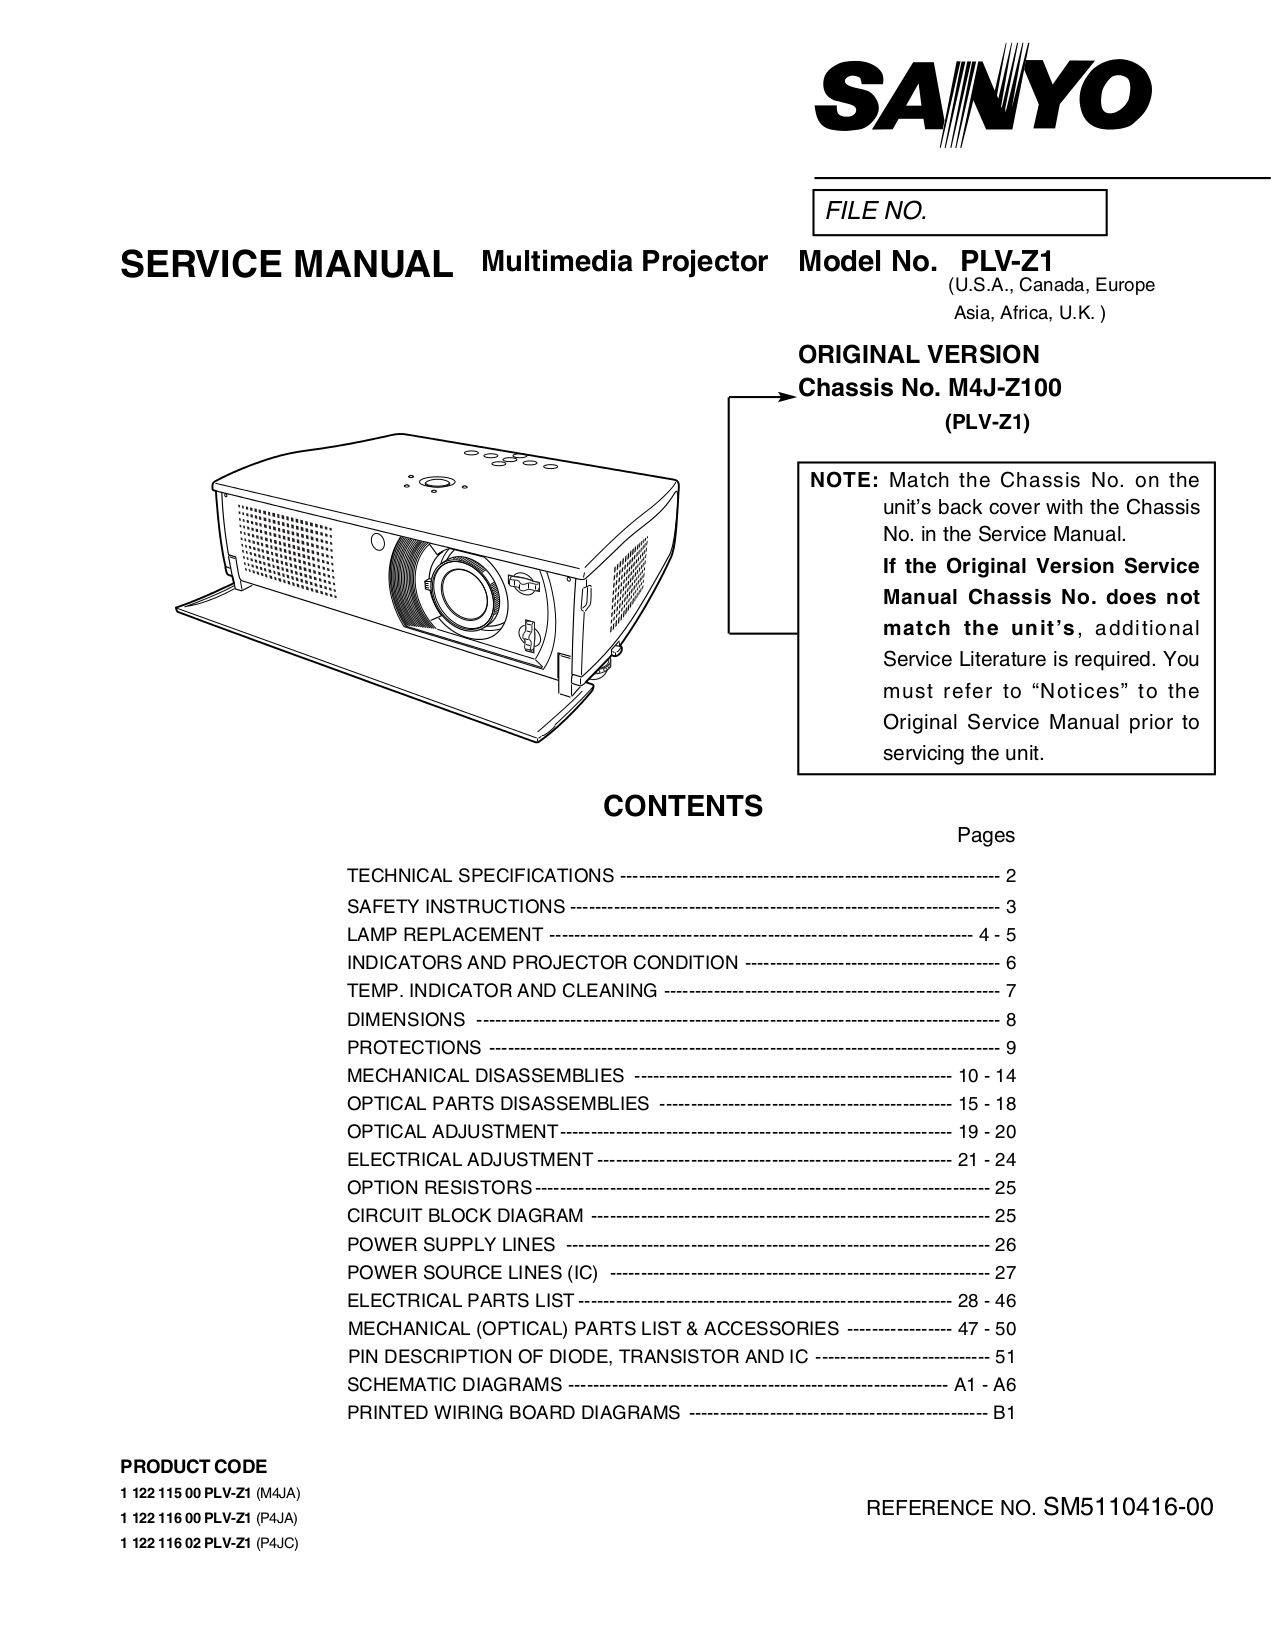 Dell manual e6500 ebook pdf for sanyo projector plv z1 manual fandeluxe